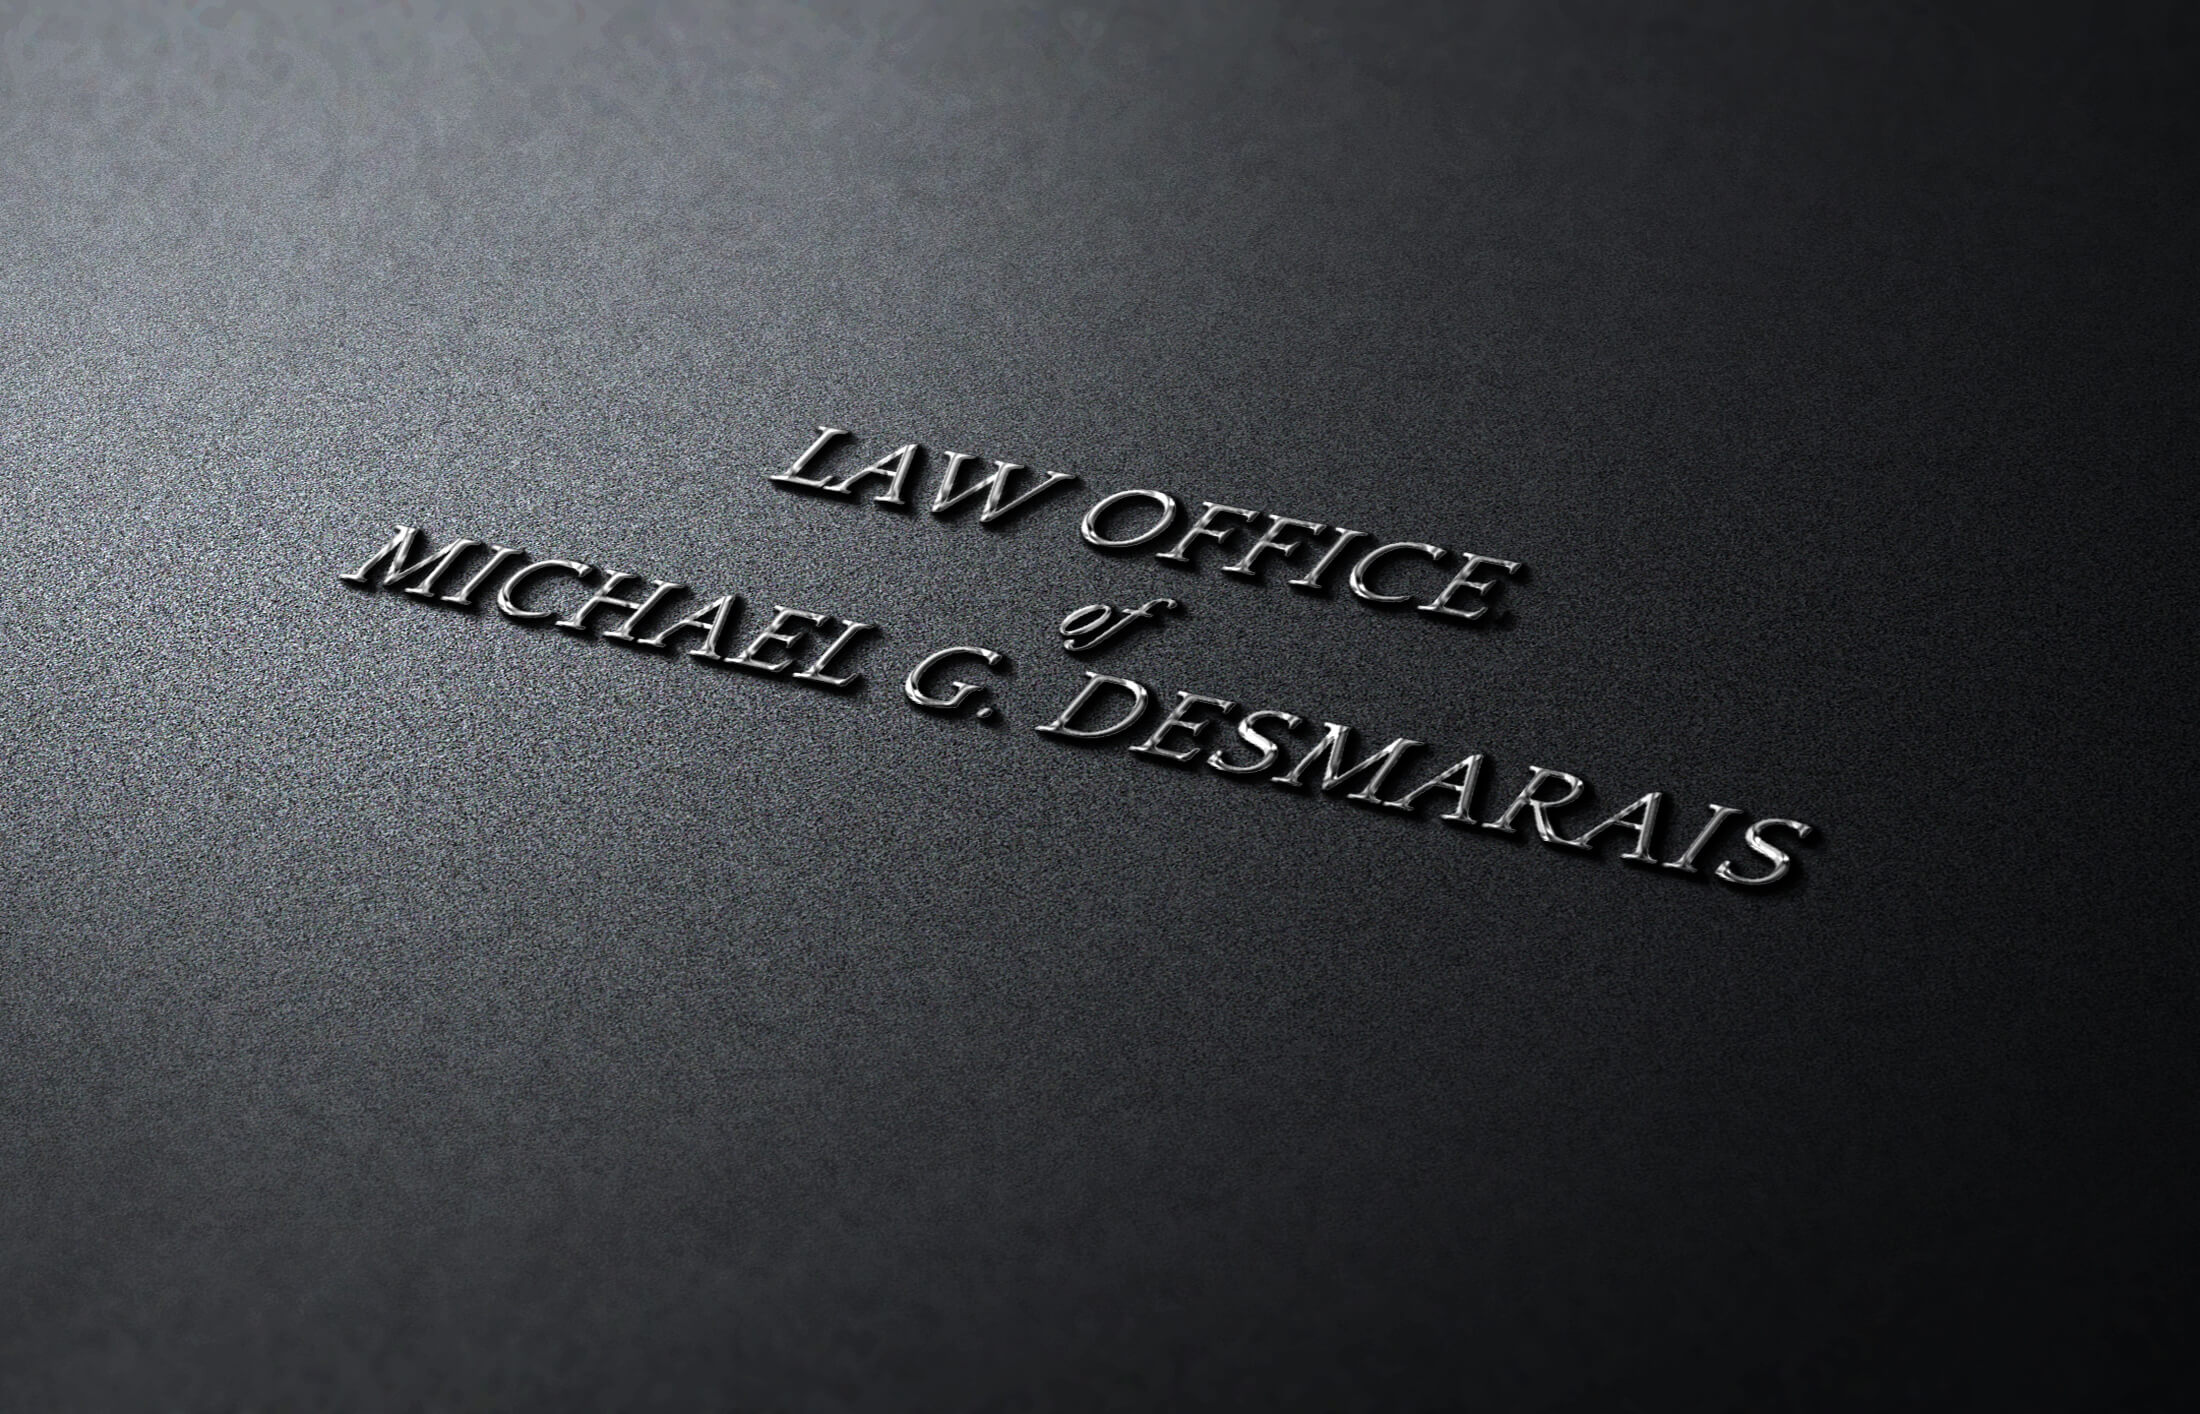 Law Office of Michael Desmarais - The Chase Design